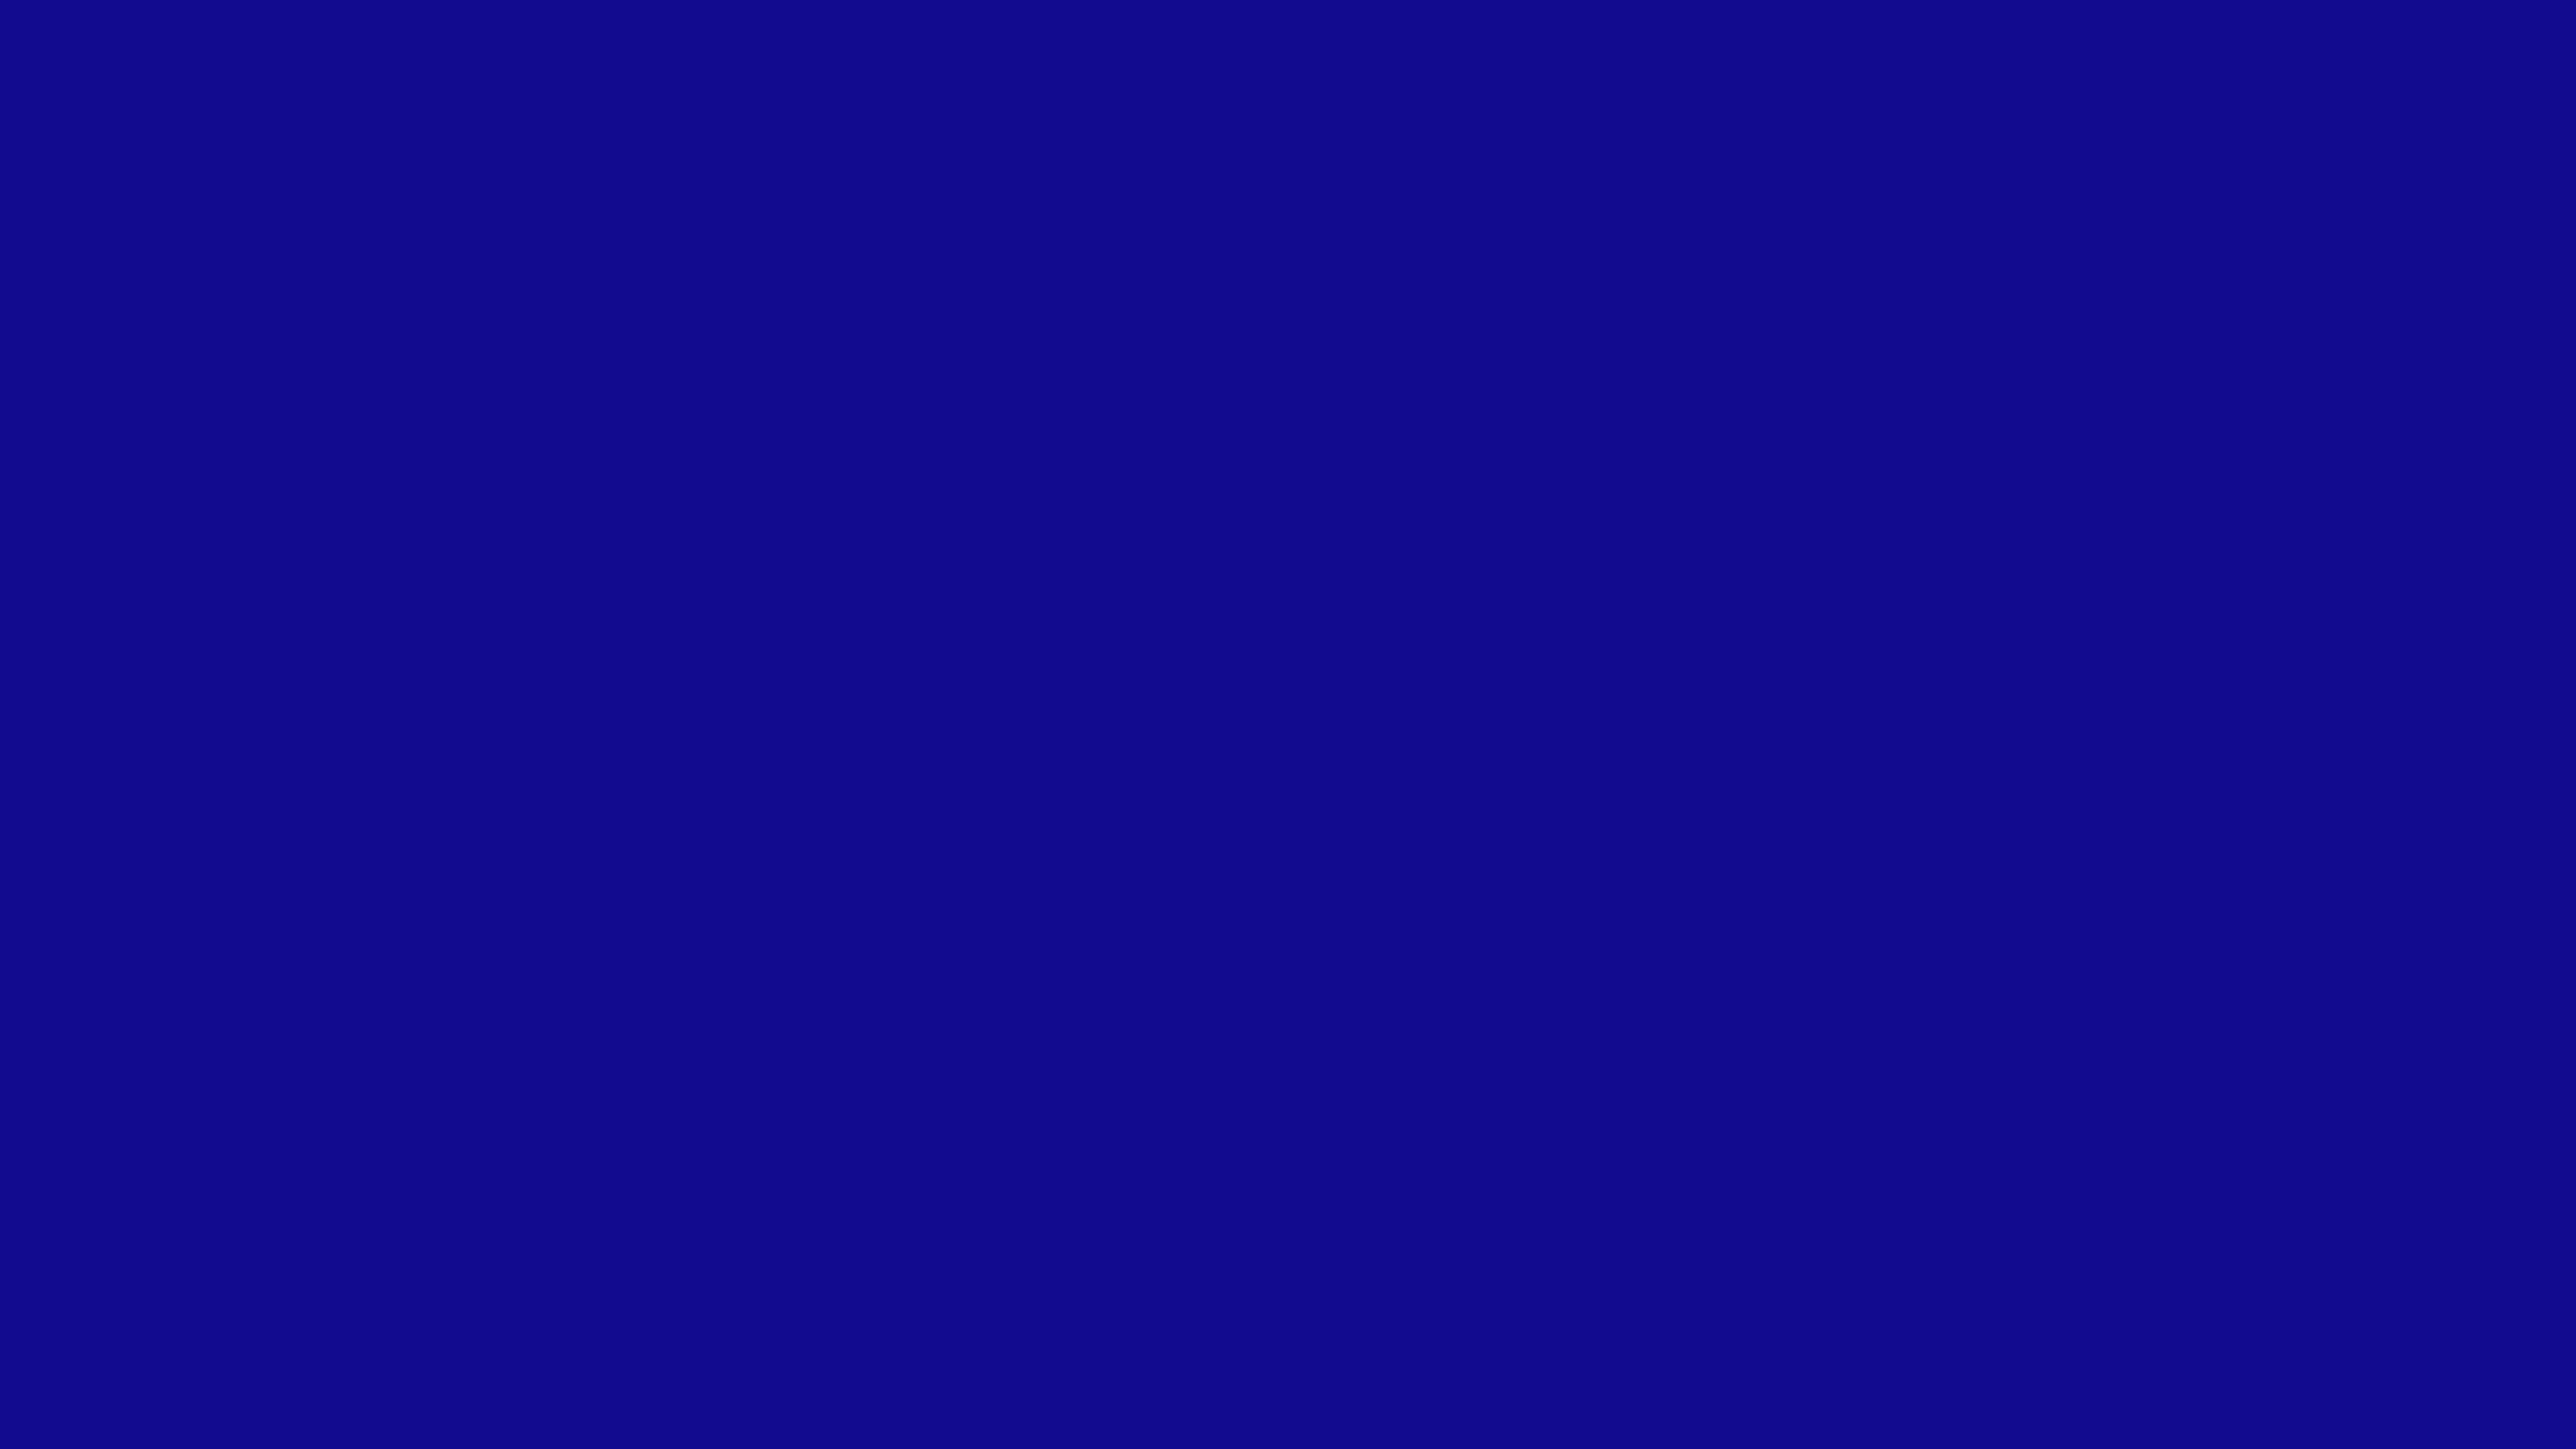 4096x2304 Ultramarine Solid Color Background